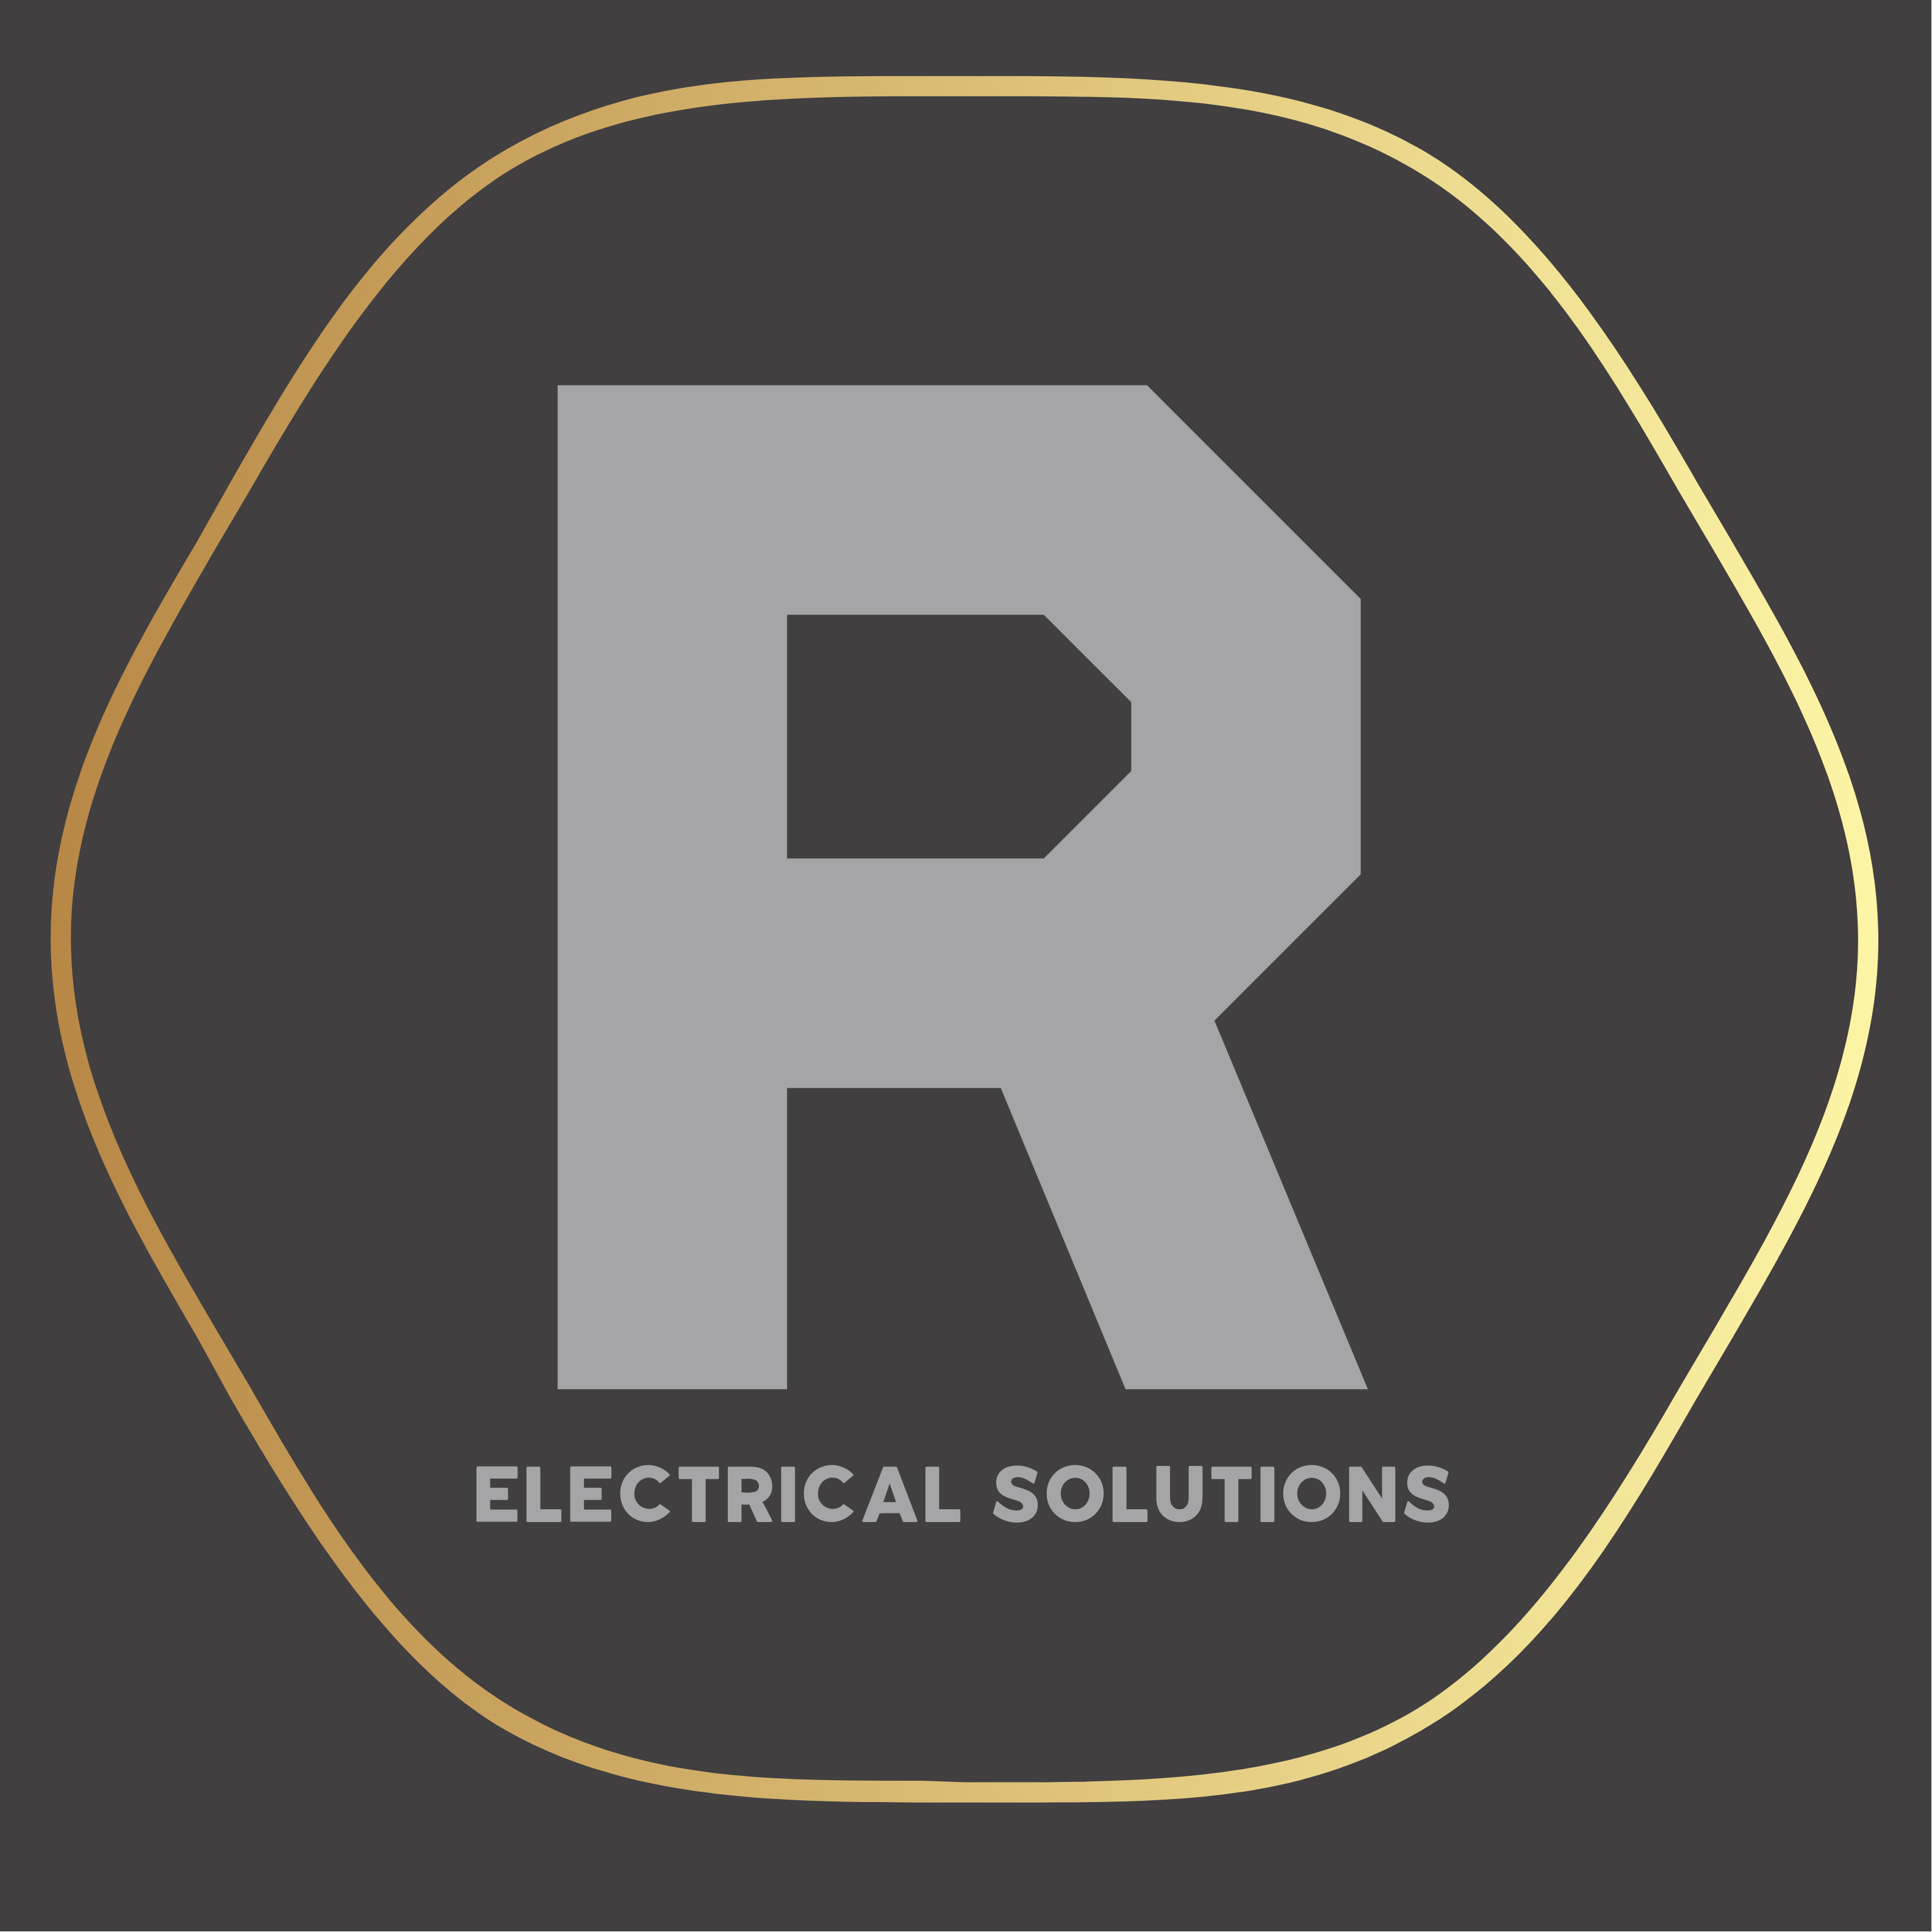 R Electrical Solutions Verified Logo